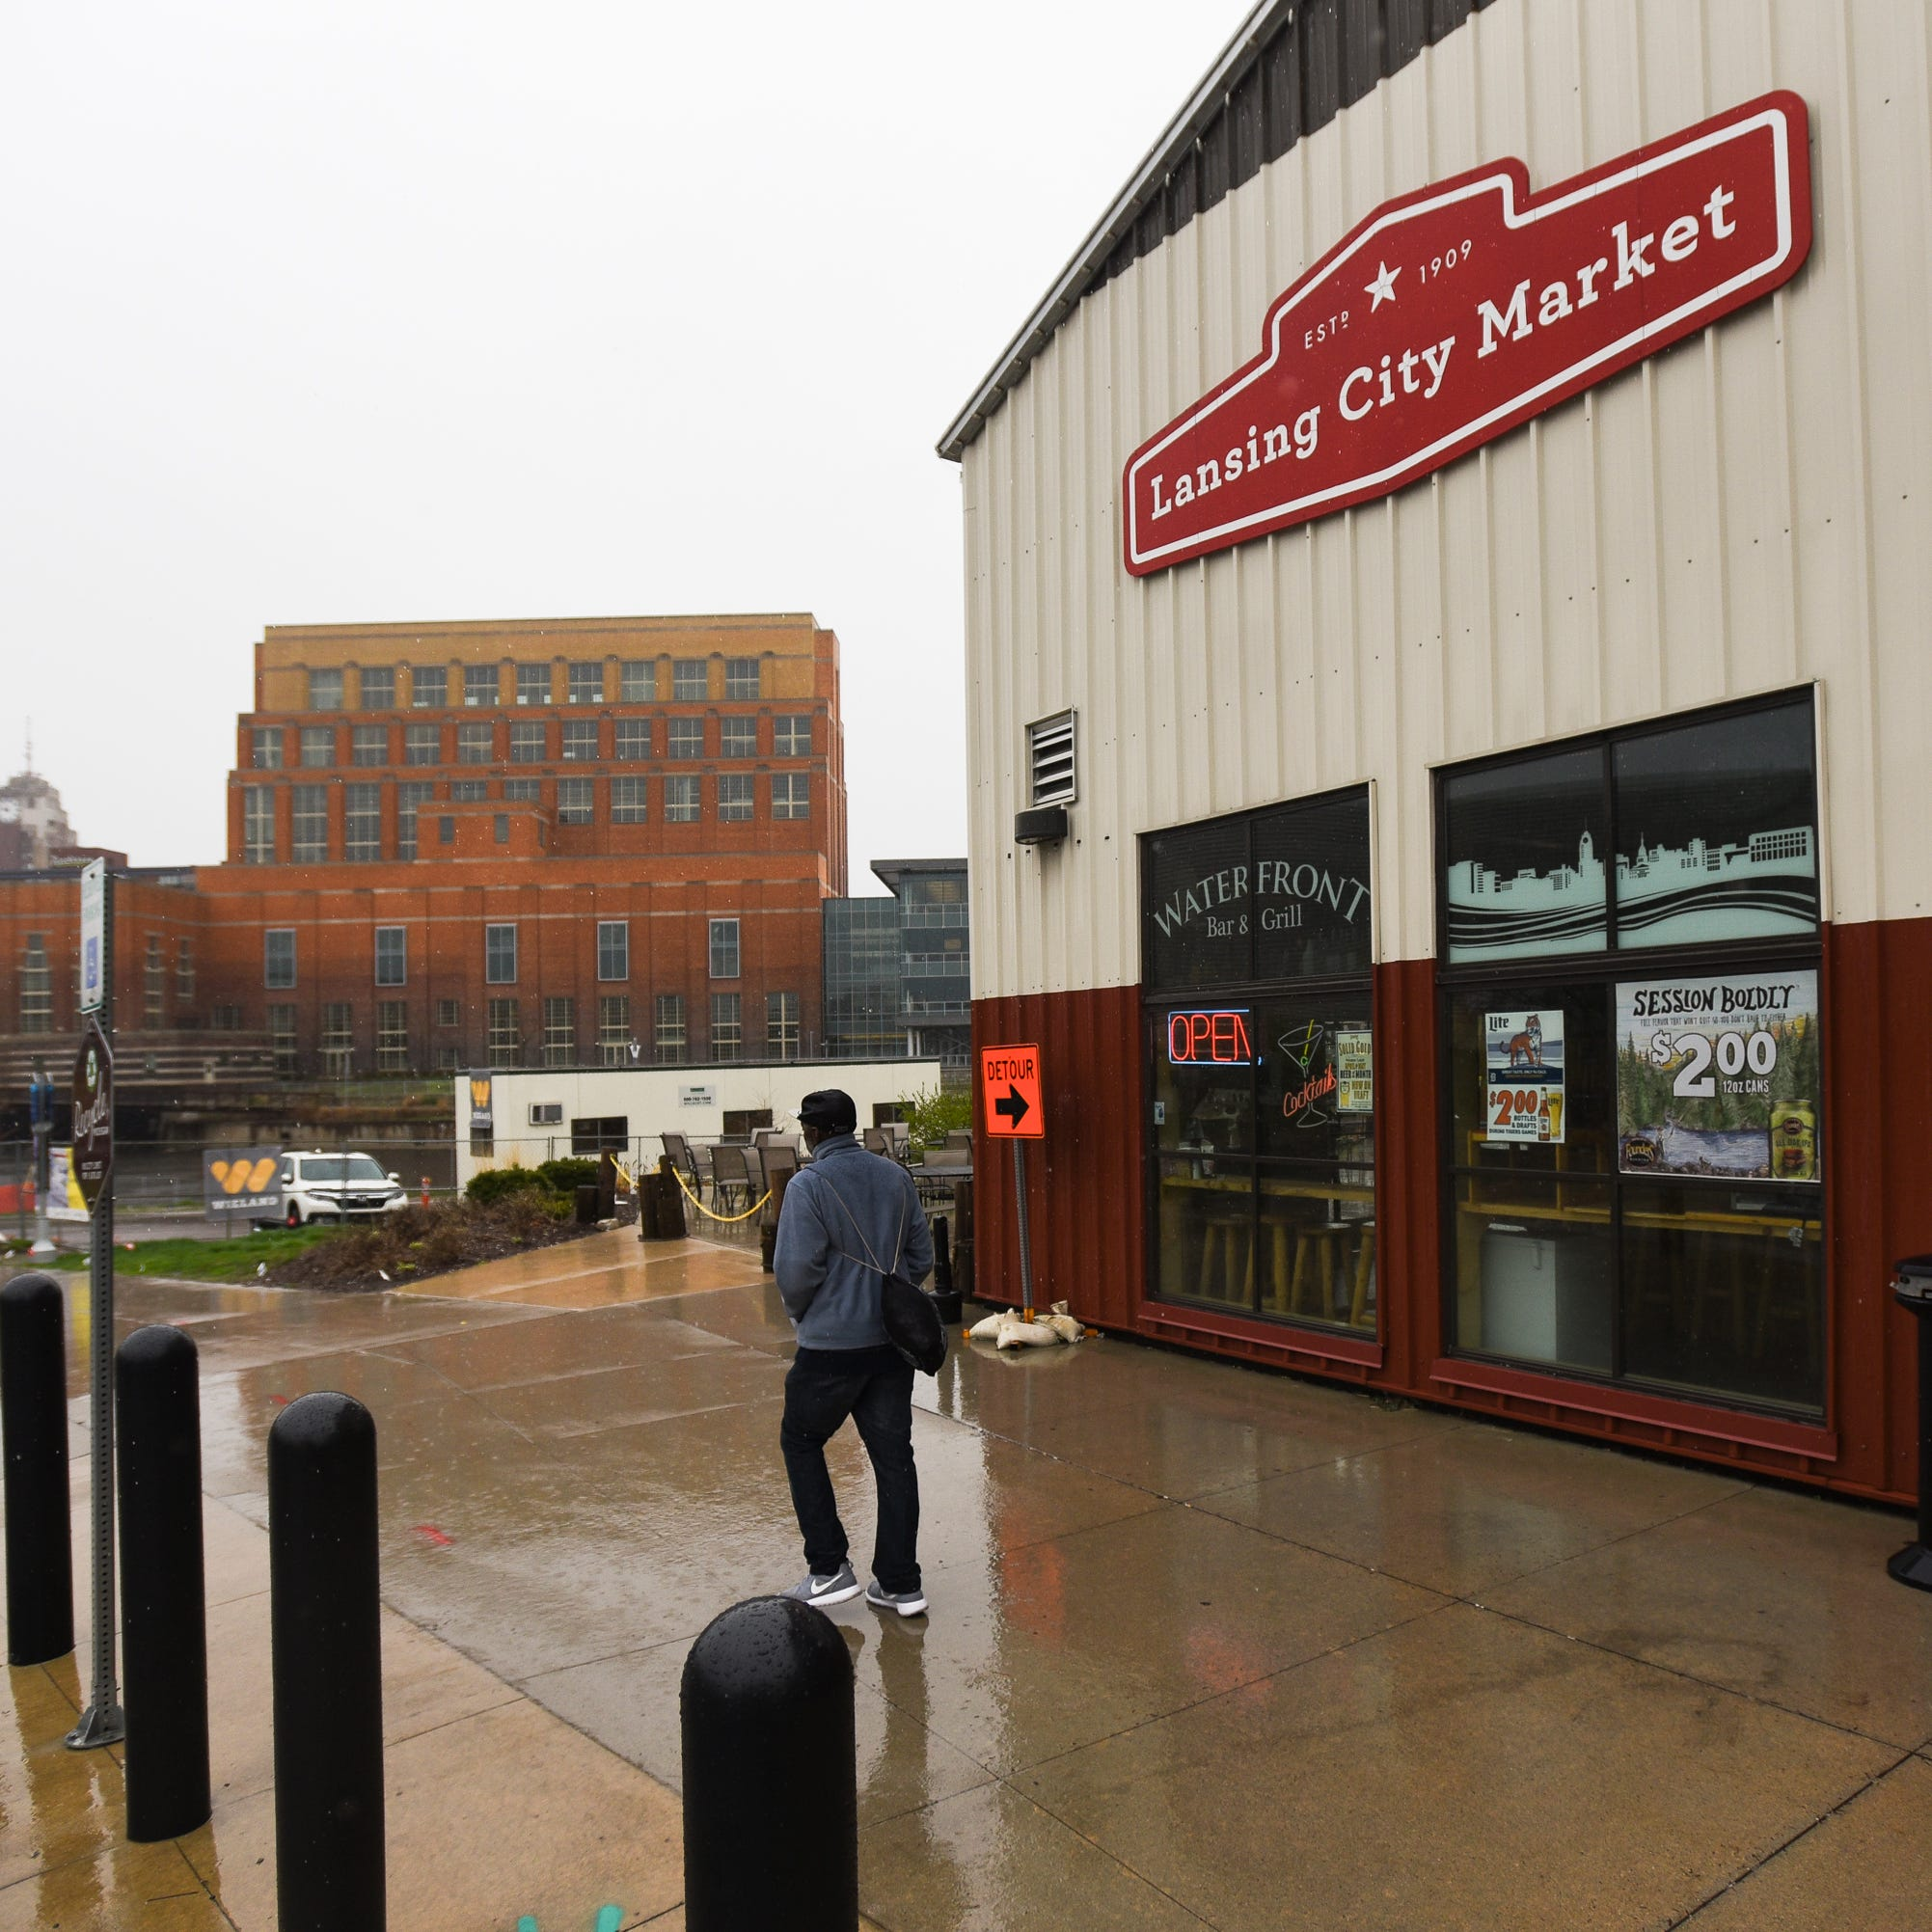 Appeals court: Waterfront Bar & Grill must leave Lansing City Market by June